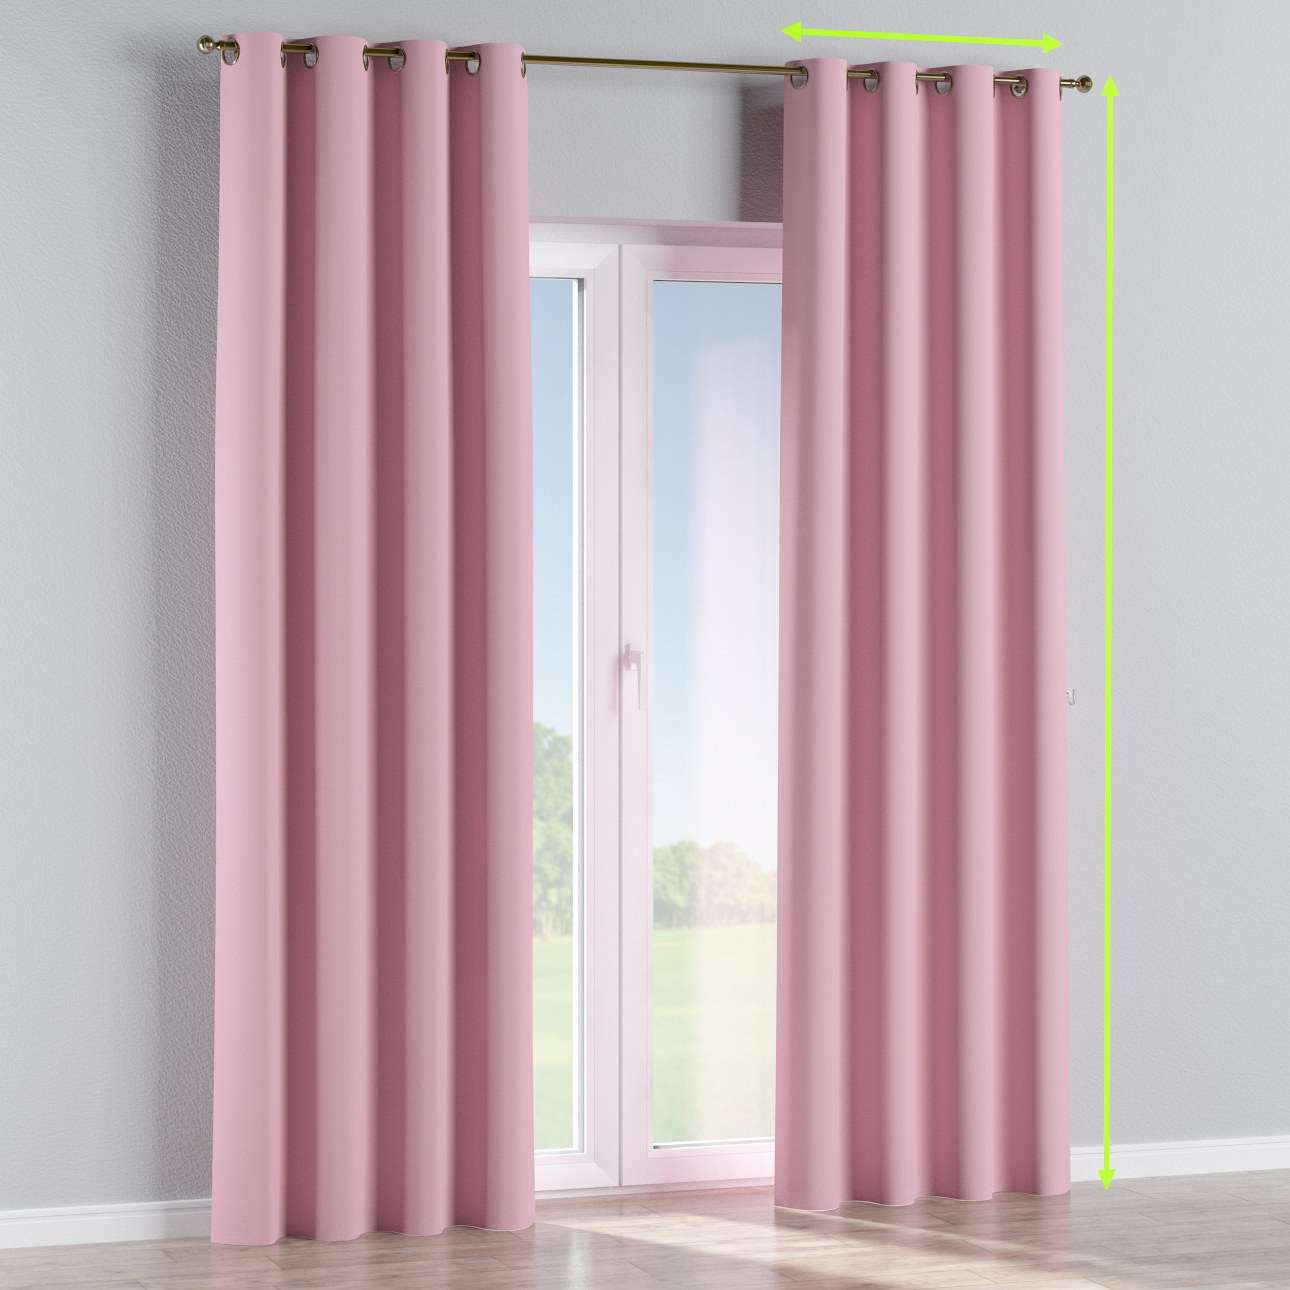 Eyelet curtain in collection Blackout, fabric: 269-92